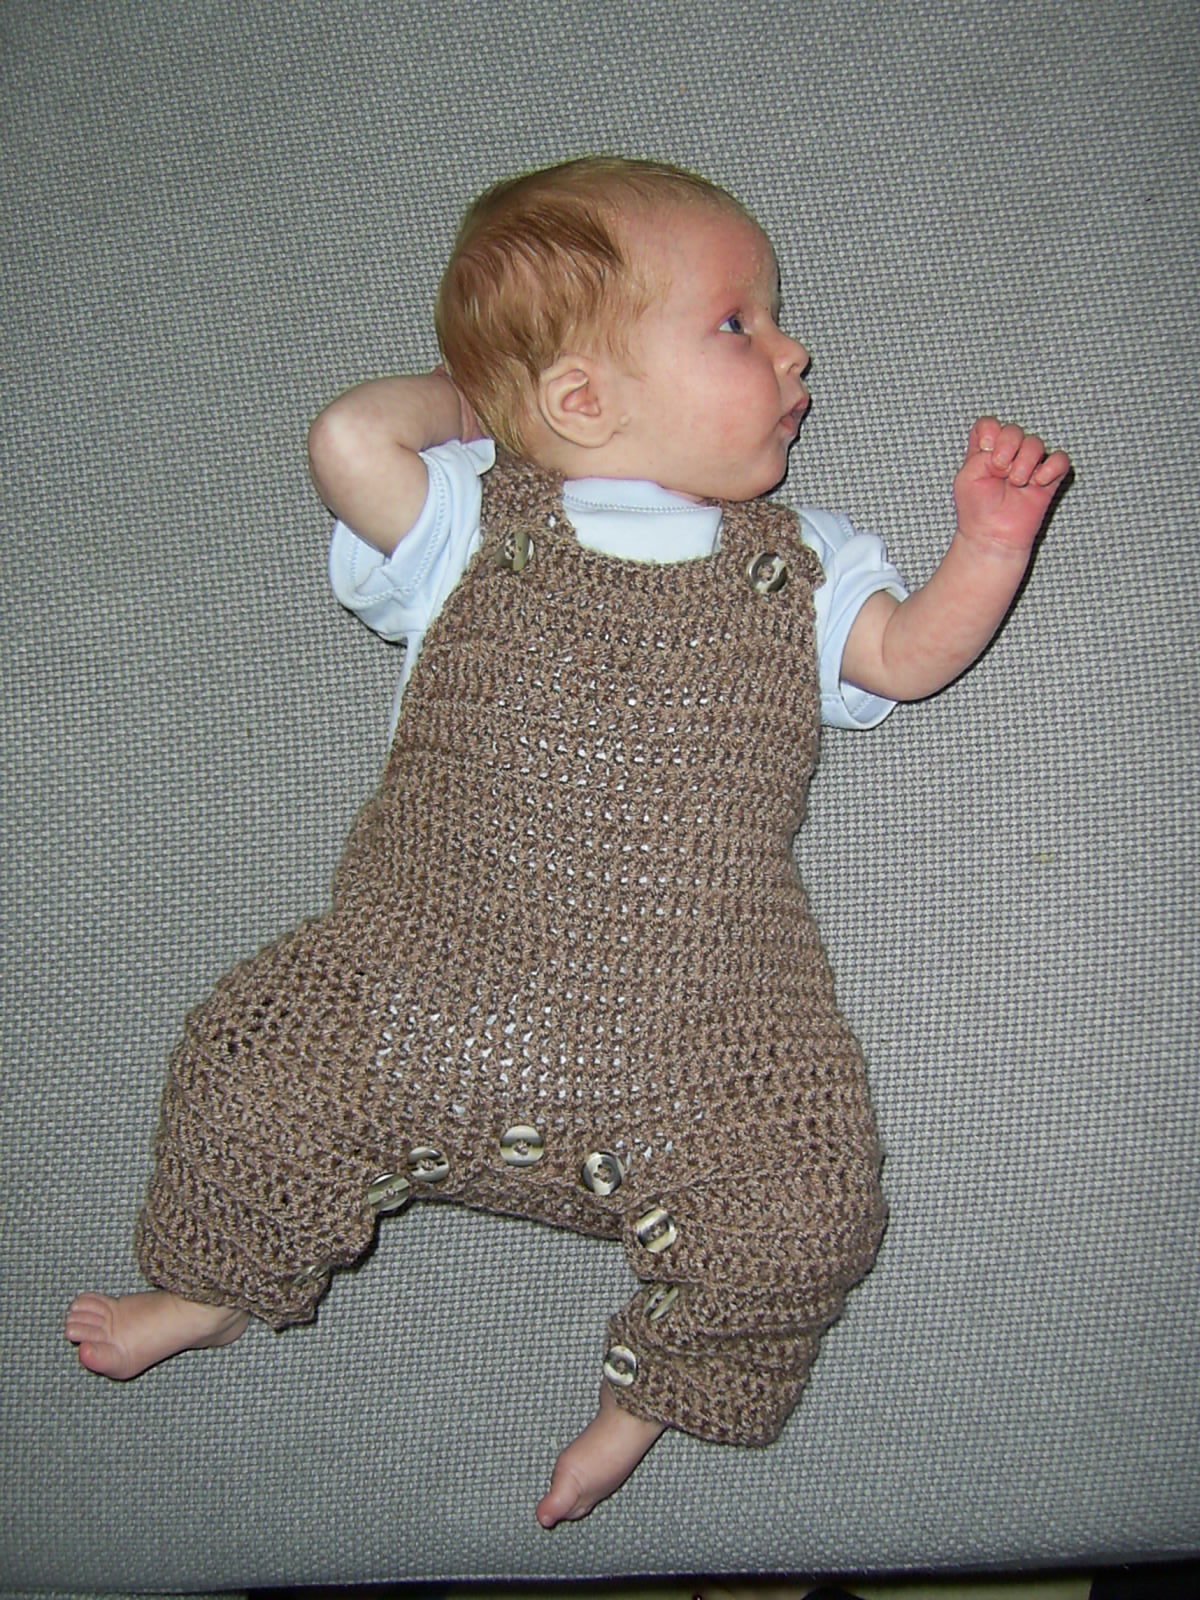 Crochet Baby Overall Patterns : Mauv is Crafty: Crochet dungarees - free pattern!